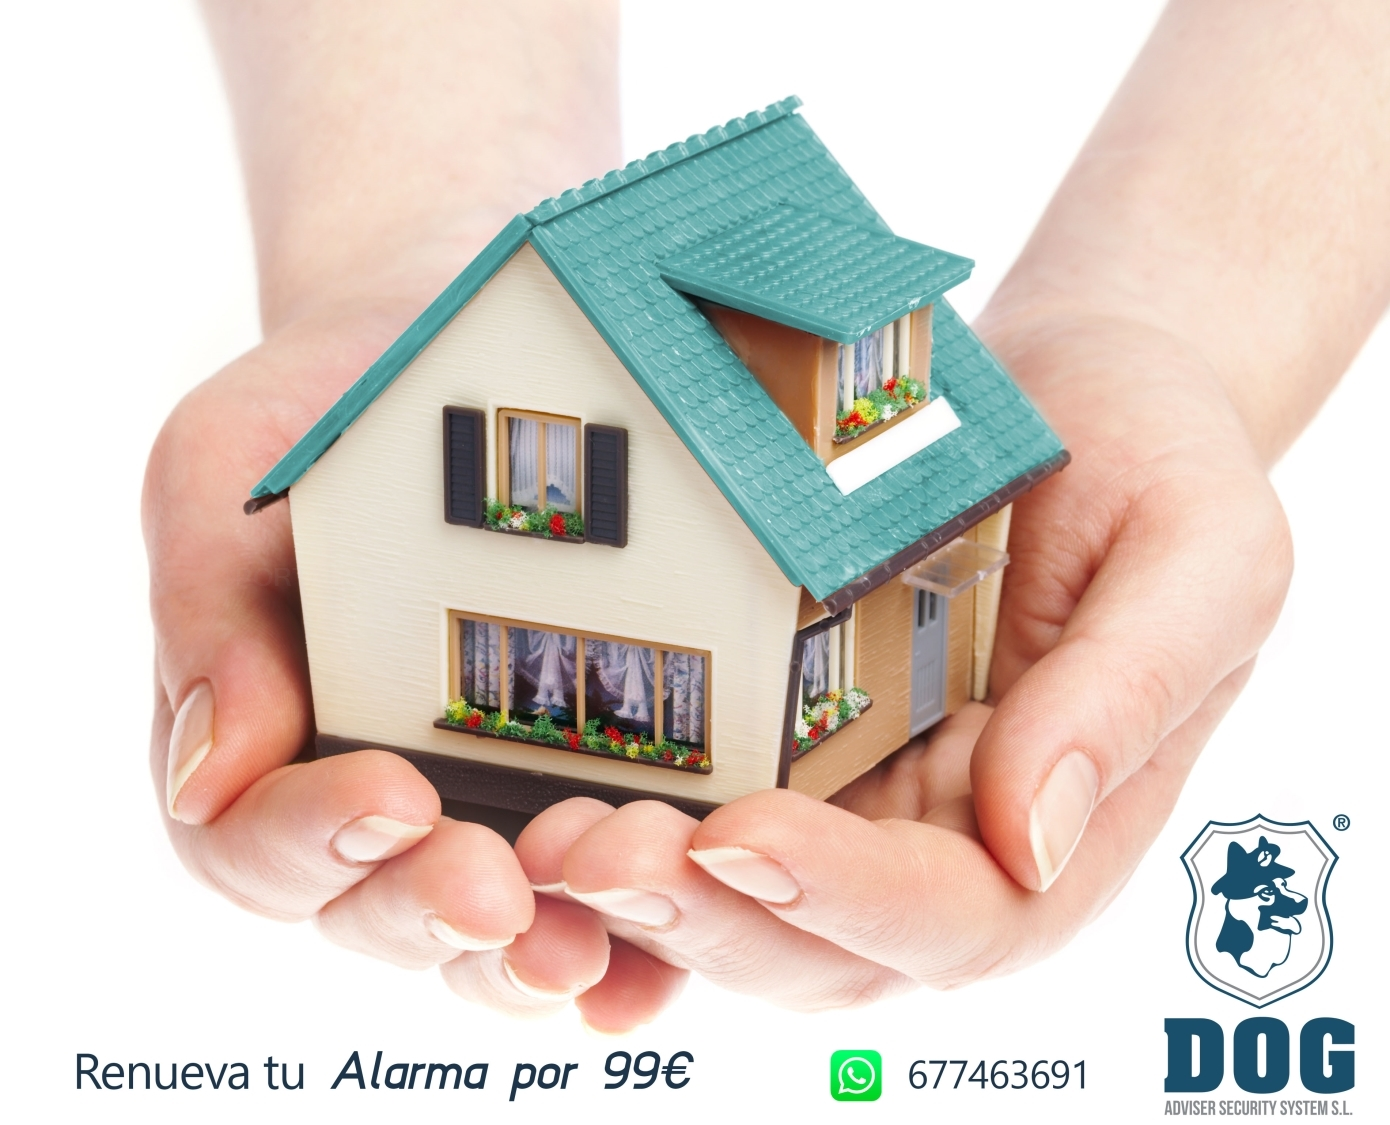 DOG Seguridad y Control